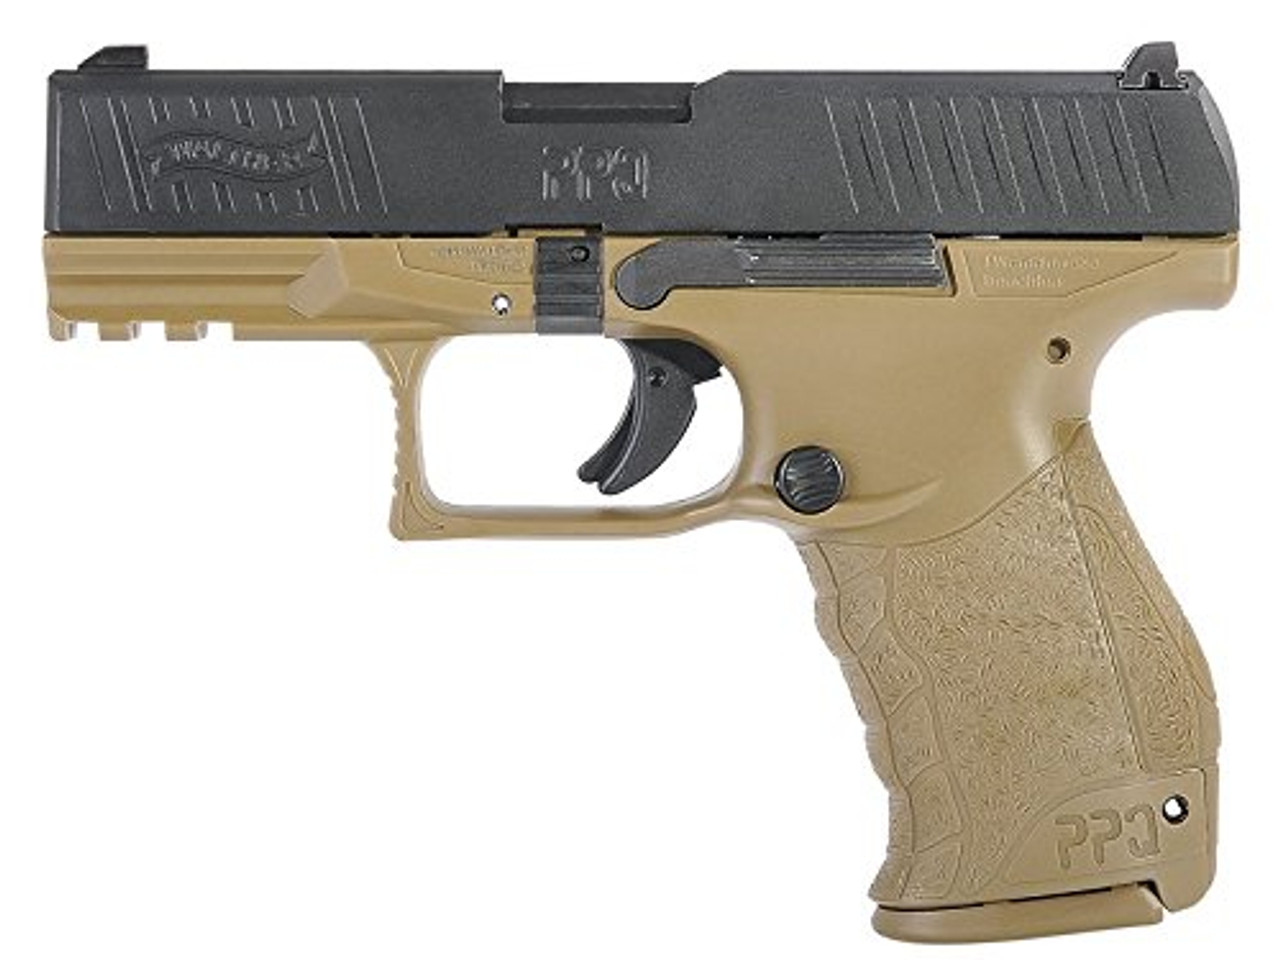 Muzzle left of Walther / StarkArms PPQ M2 Tan GBB Airsoft gun